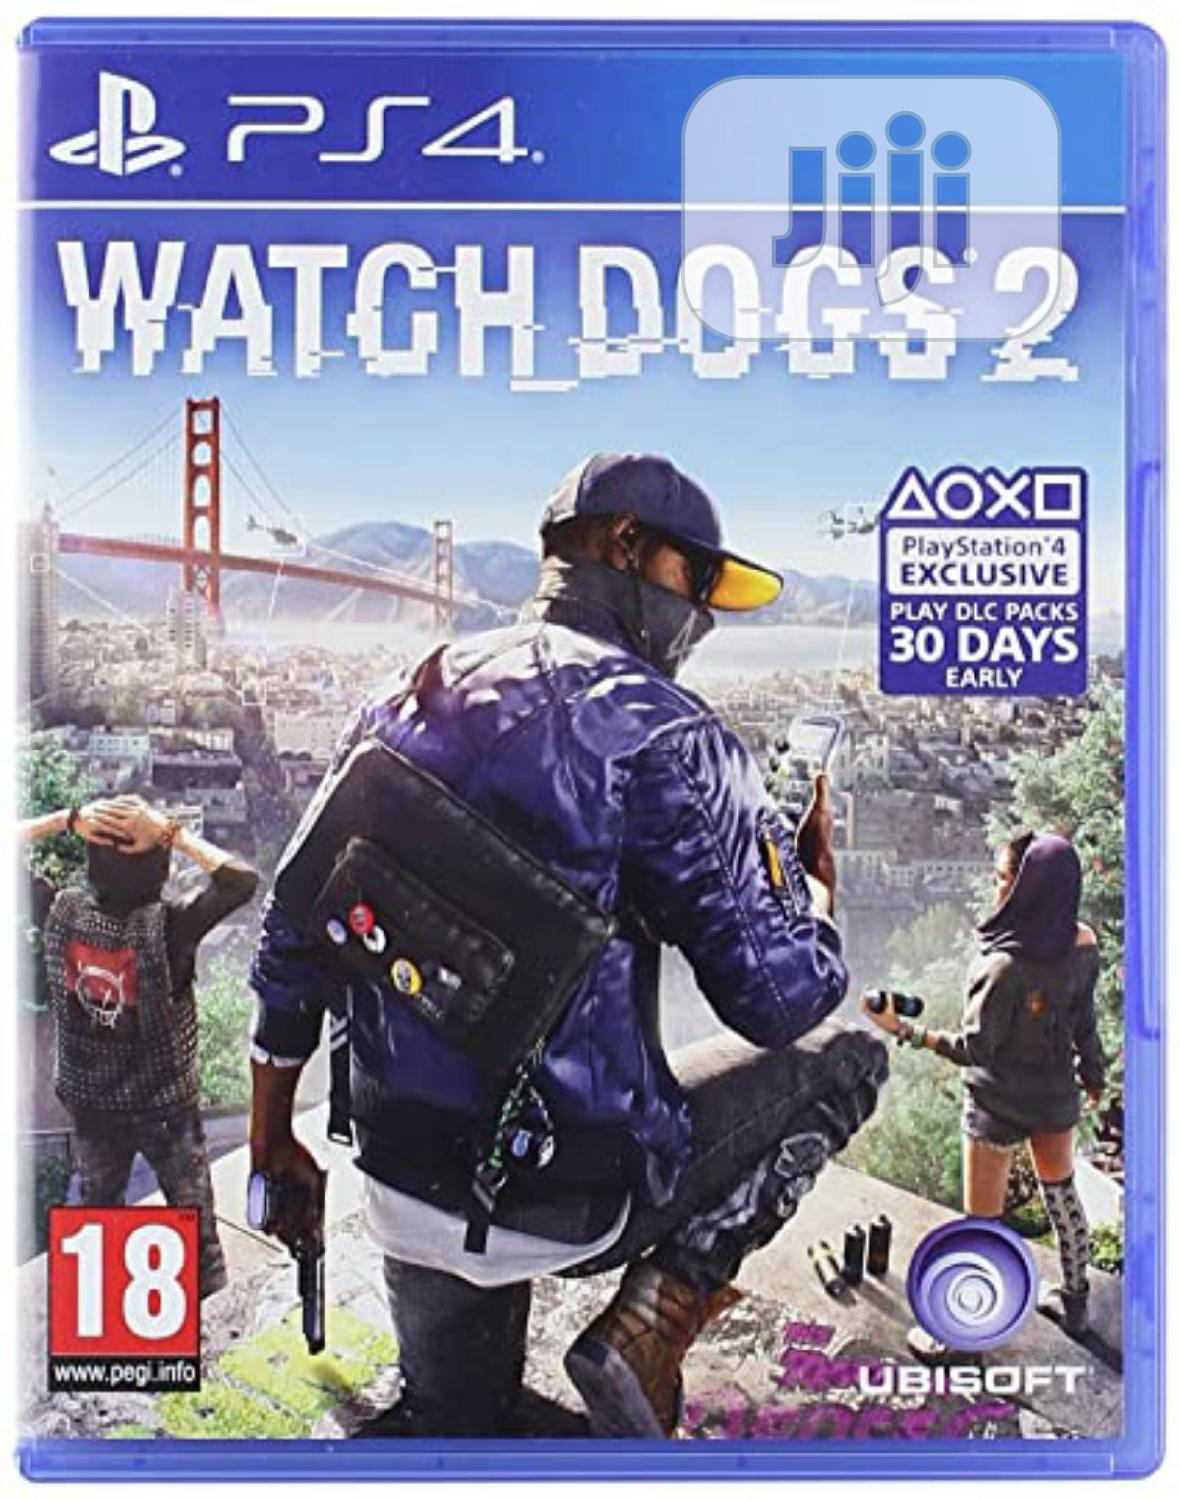 Watchdog 2 for PS4